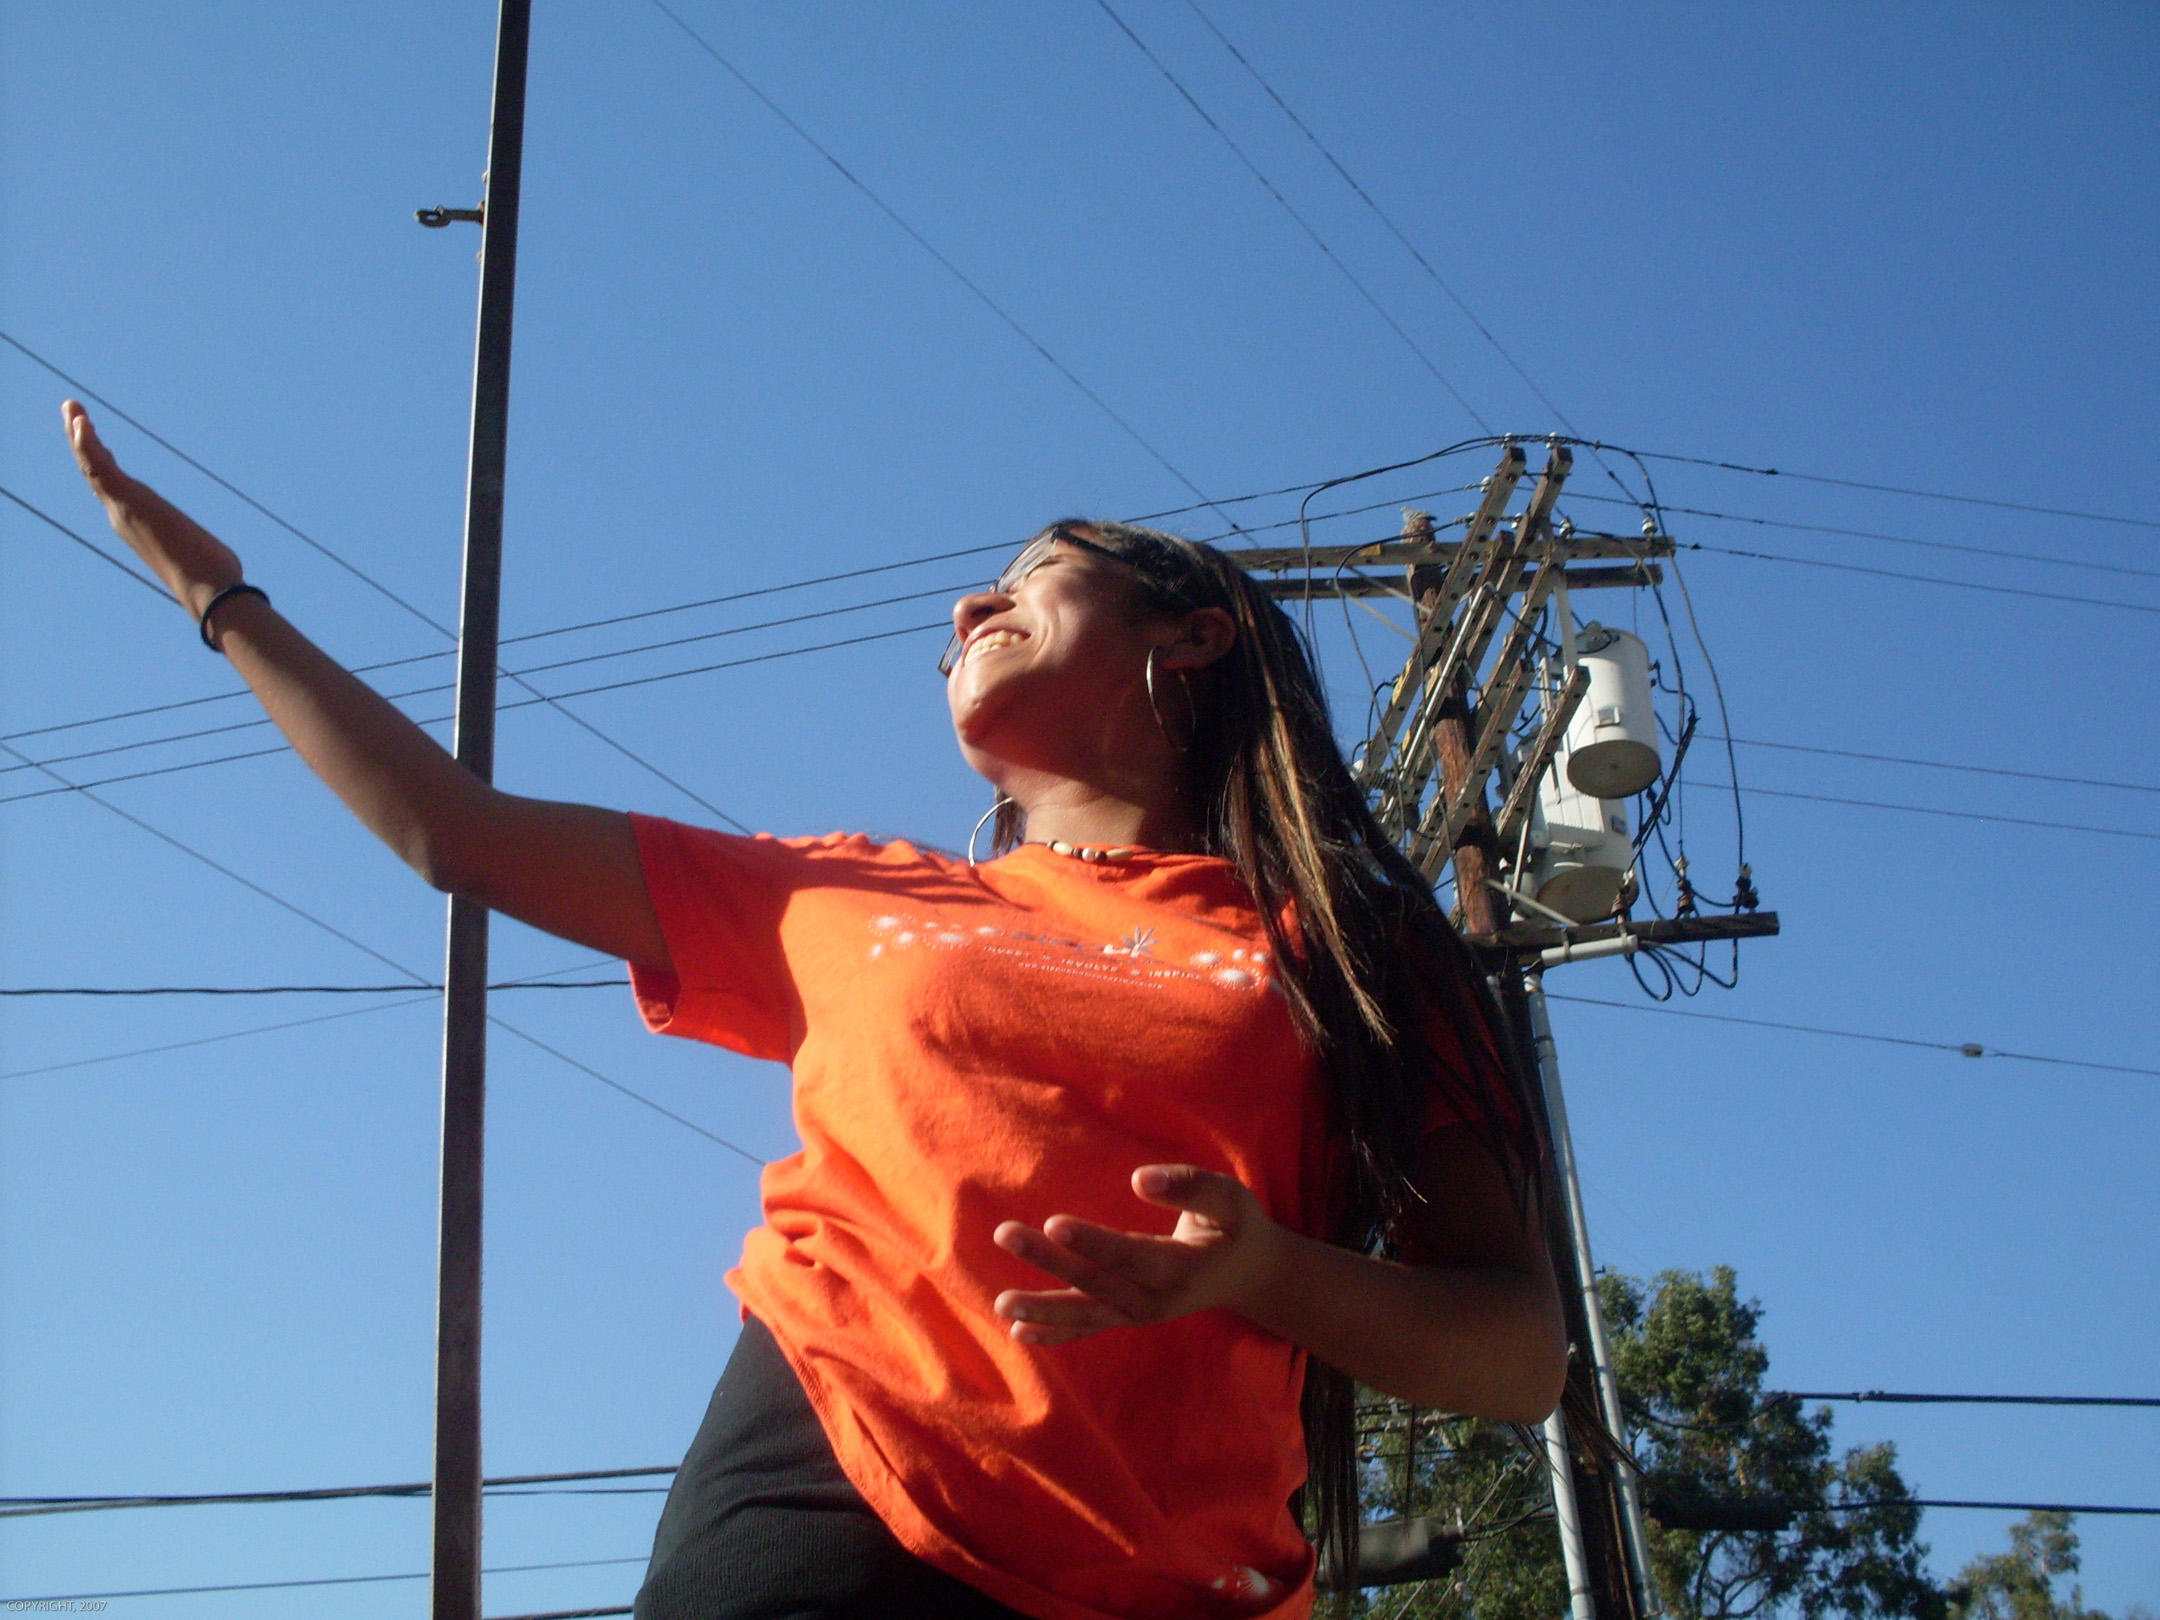 LA Leadership student Narvy Vasquez, as photographed by her fellow student Jacky Rodriguez